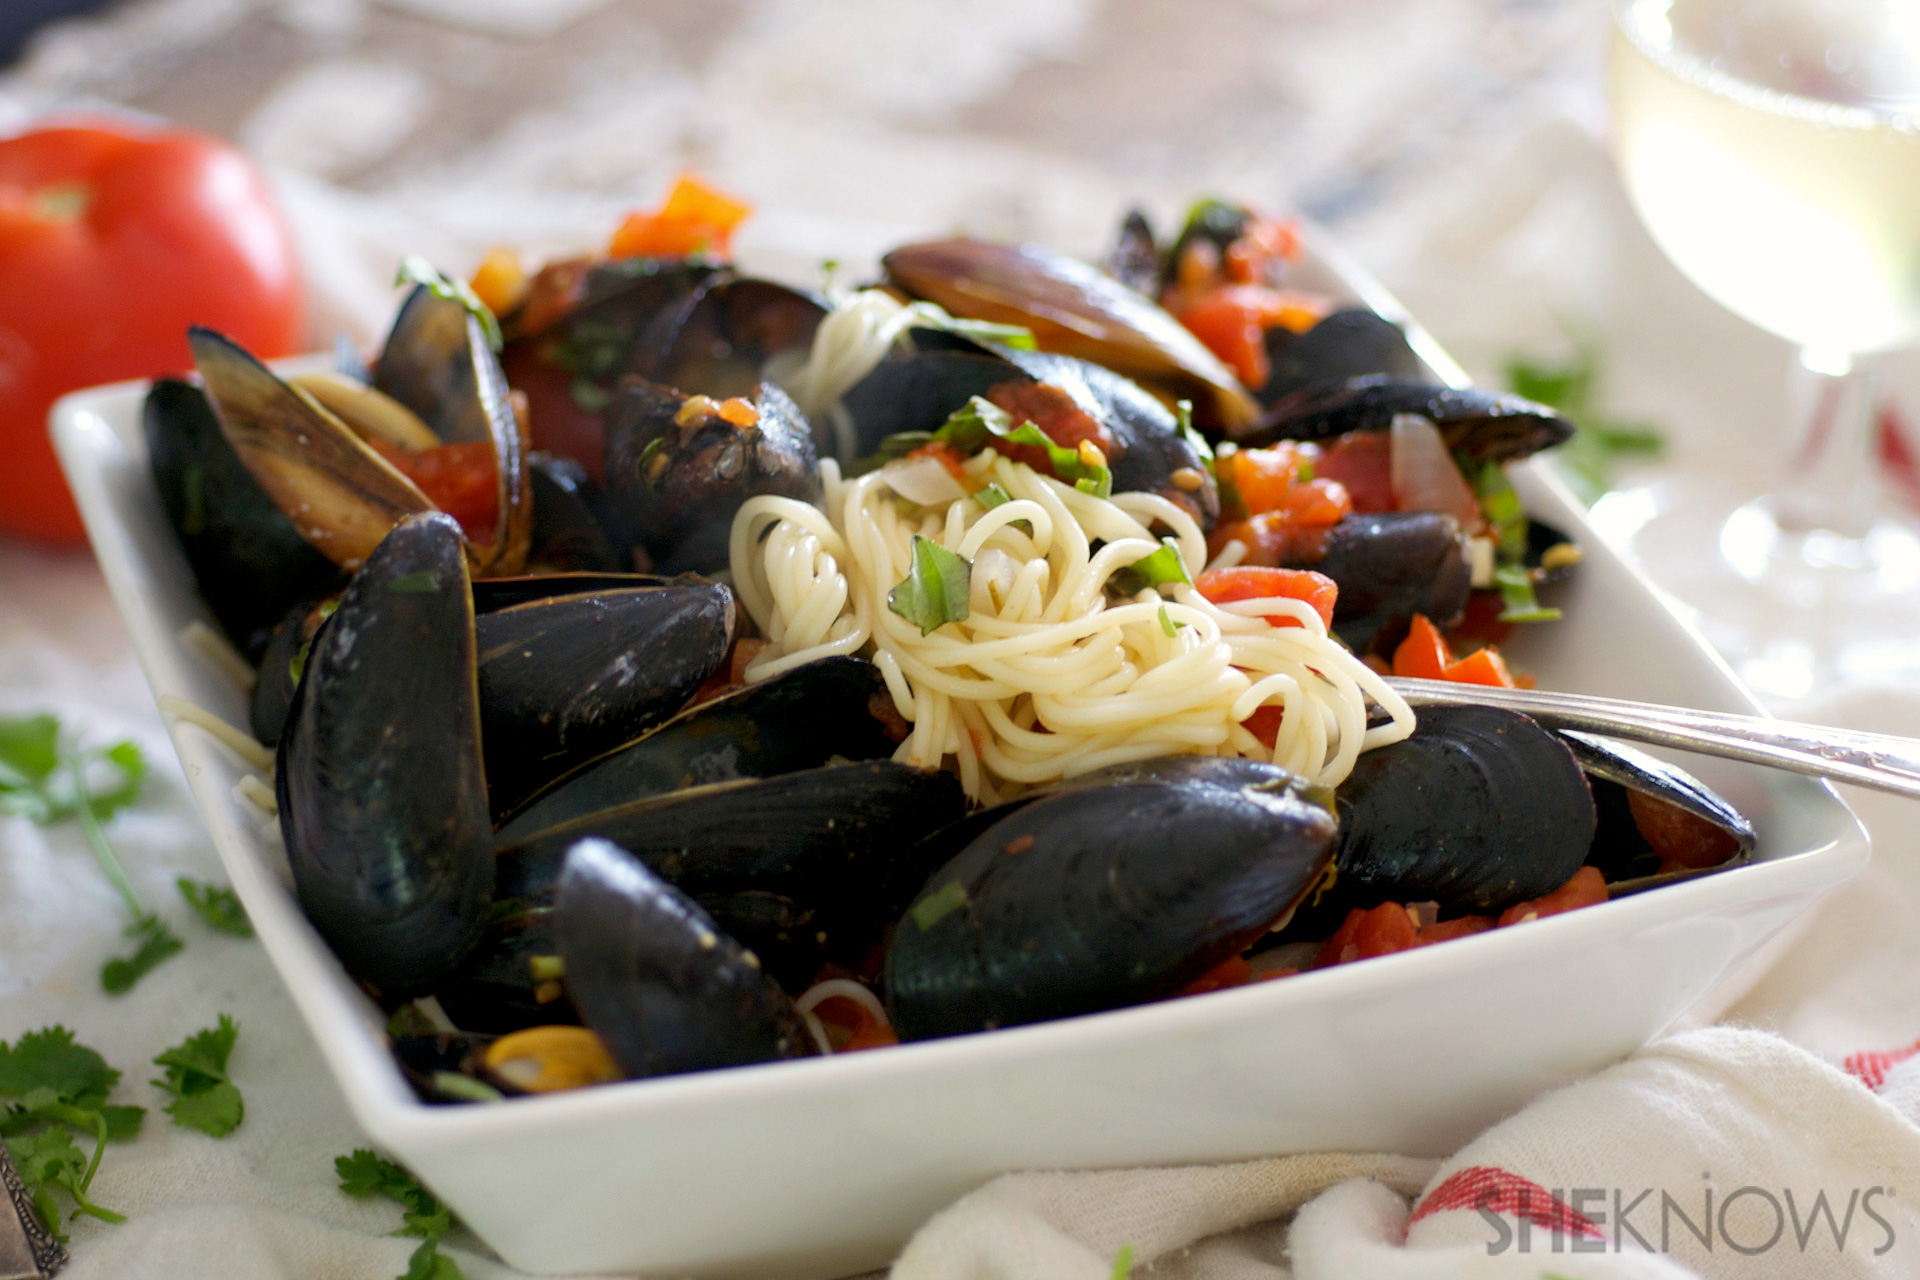 Angel hair pasta with red pepper sauce and mussels recipe